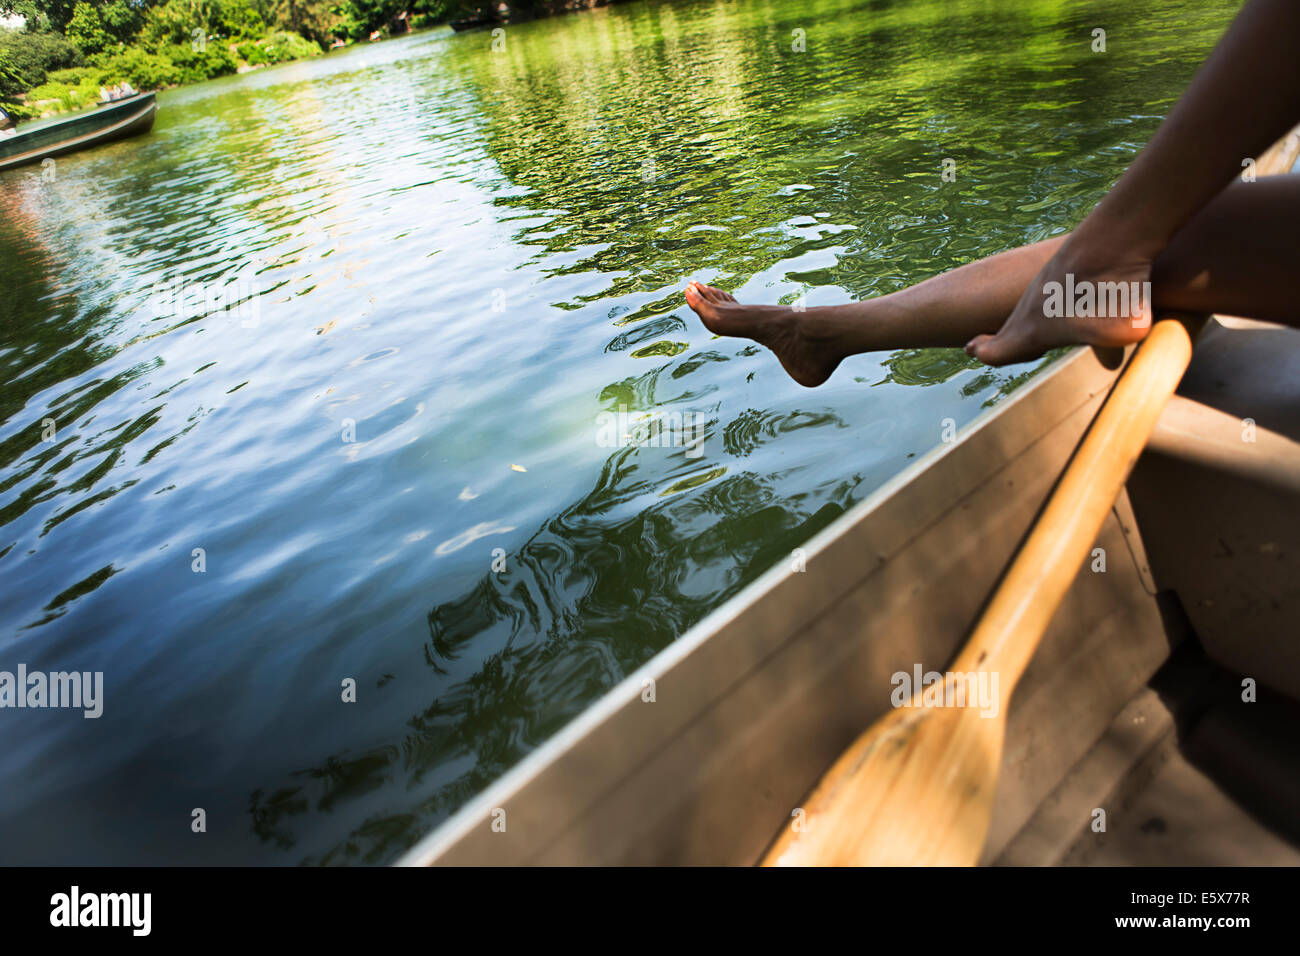 Cropped image of young woman's legs in rowing boat on lake in Central Park, New York City, USA - Stock Image